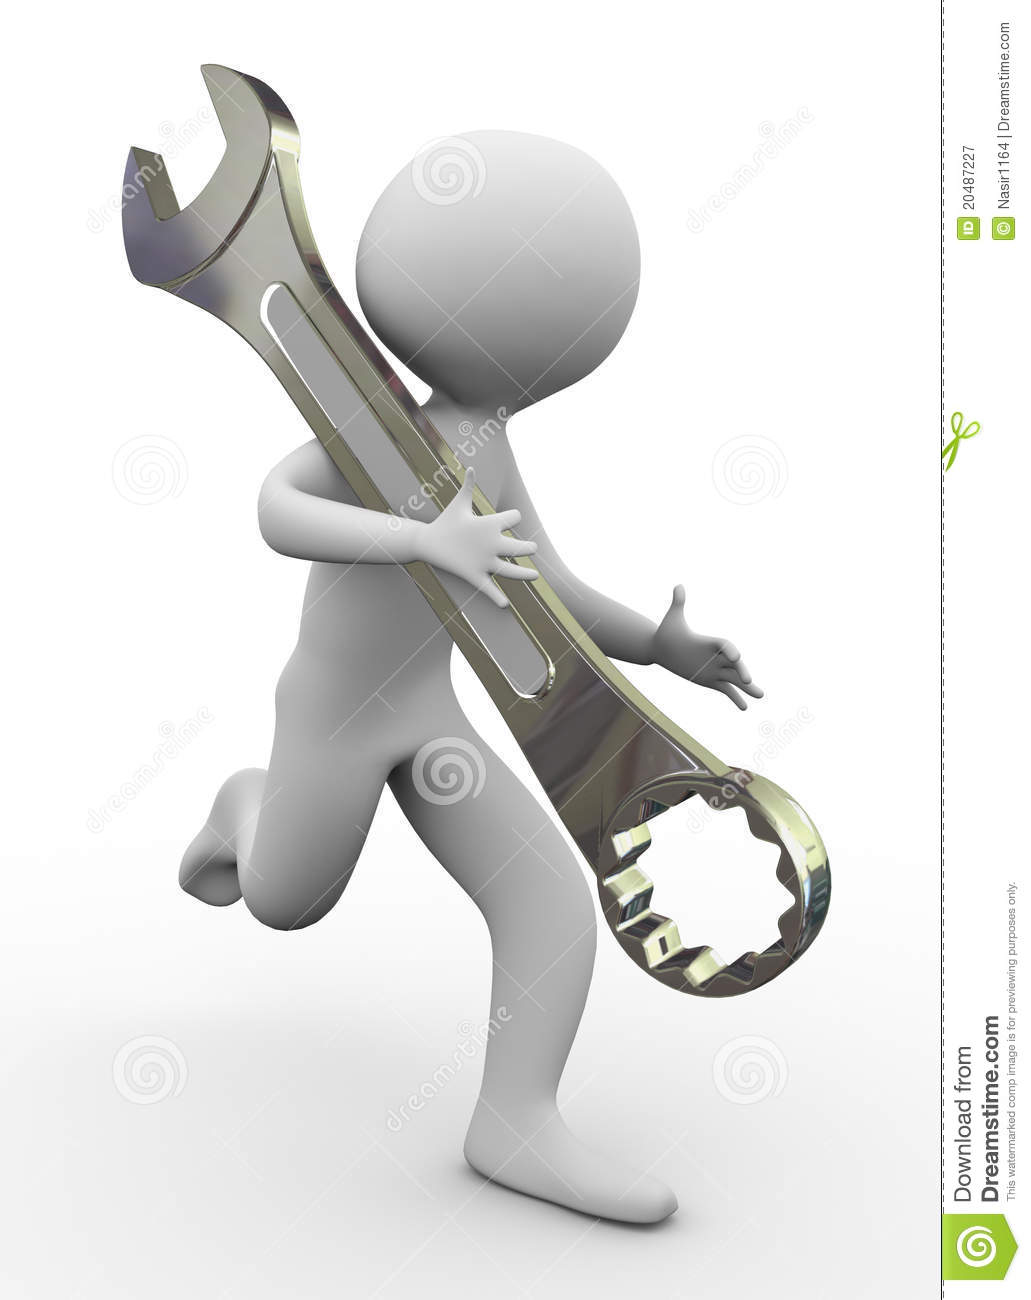 3d man and tool royalty free stock photography image 3d tool free